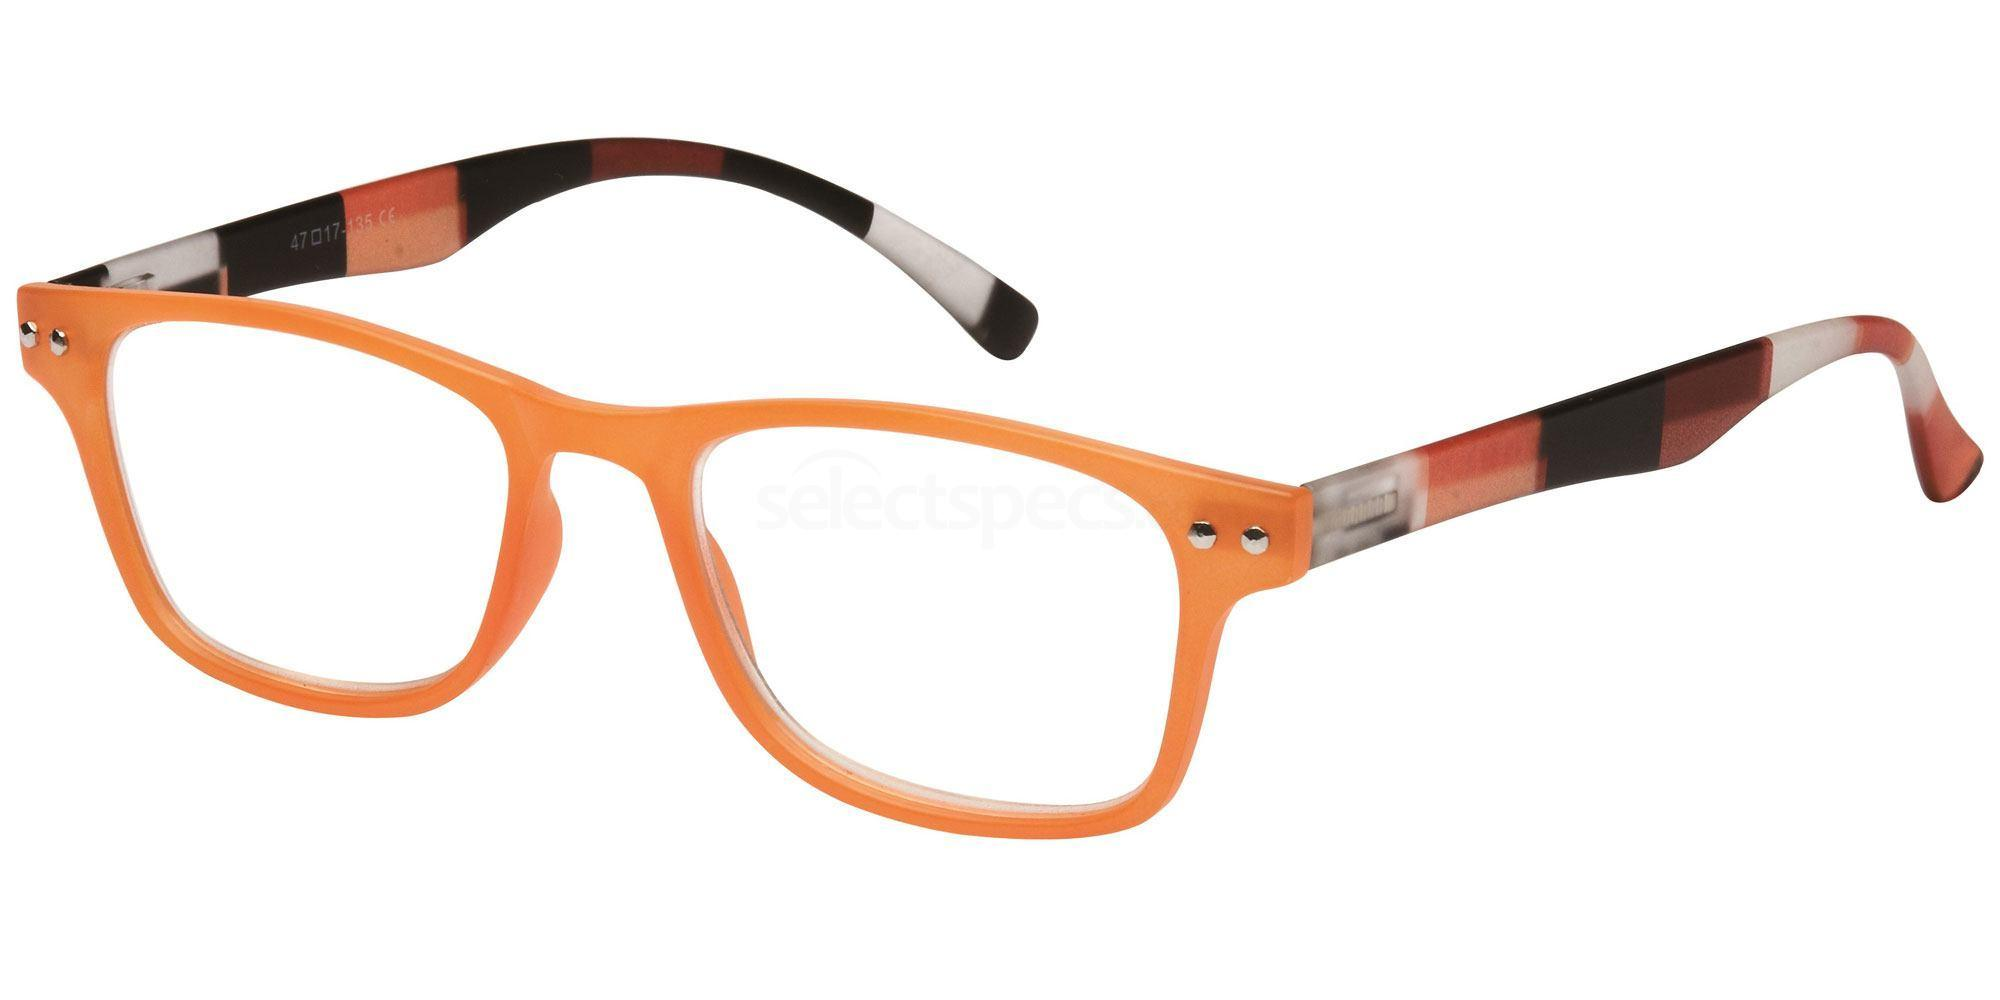 Univo Readers Readers R15C - C: Orange